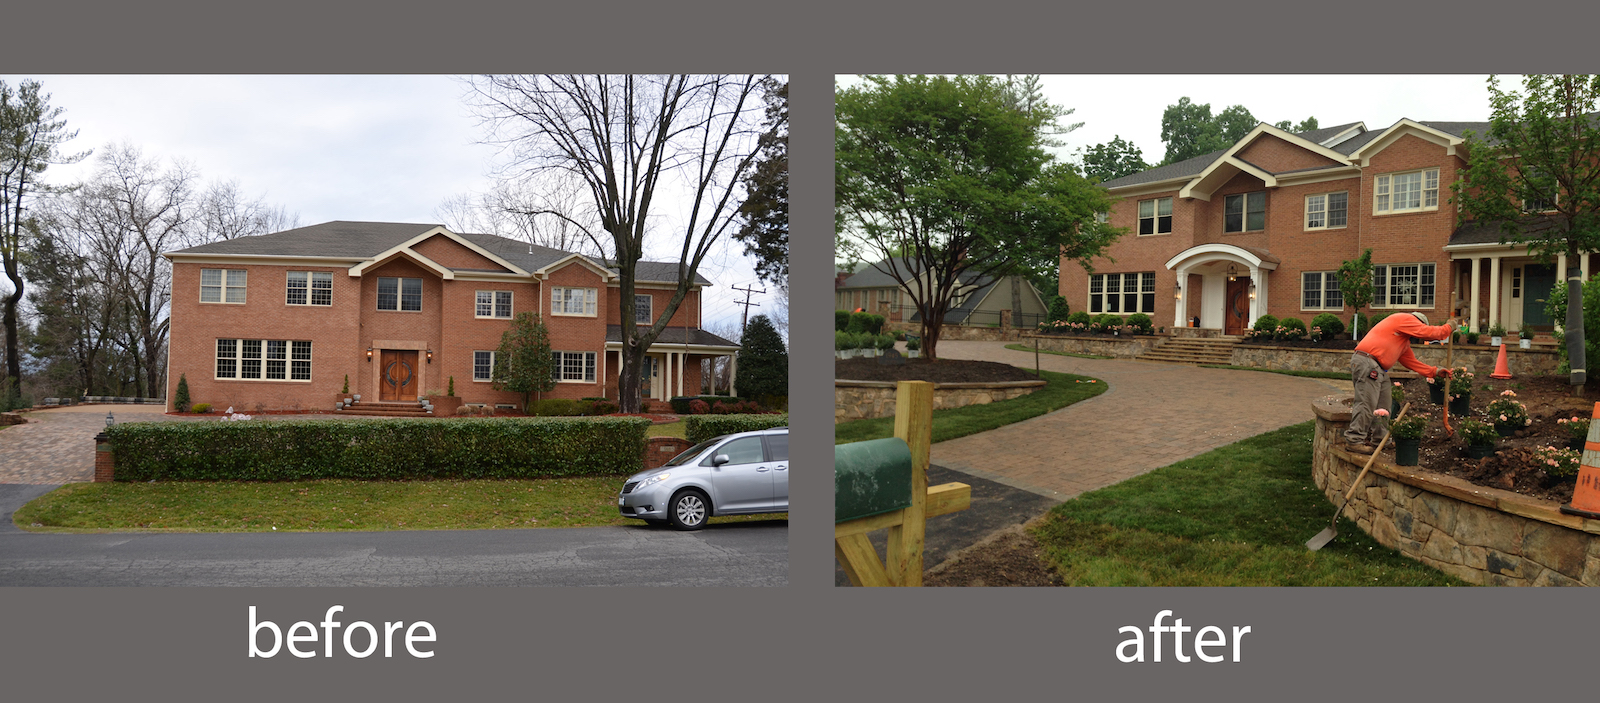 Pretentious Before After Front Yard Landscape Design Cleaned Viriginia Three Welcoming Front Yard Landscape Designs Surrounds Landscape Front Yard Landscaping S No Grass Front Yard Landscaping S Ranch outdoor Front Yard Landscaping Photo